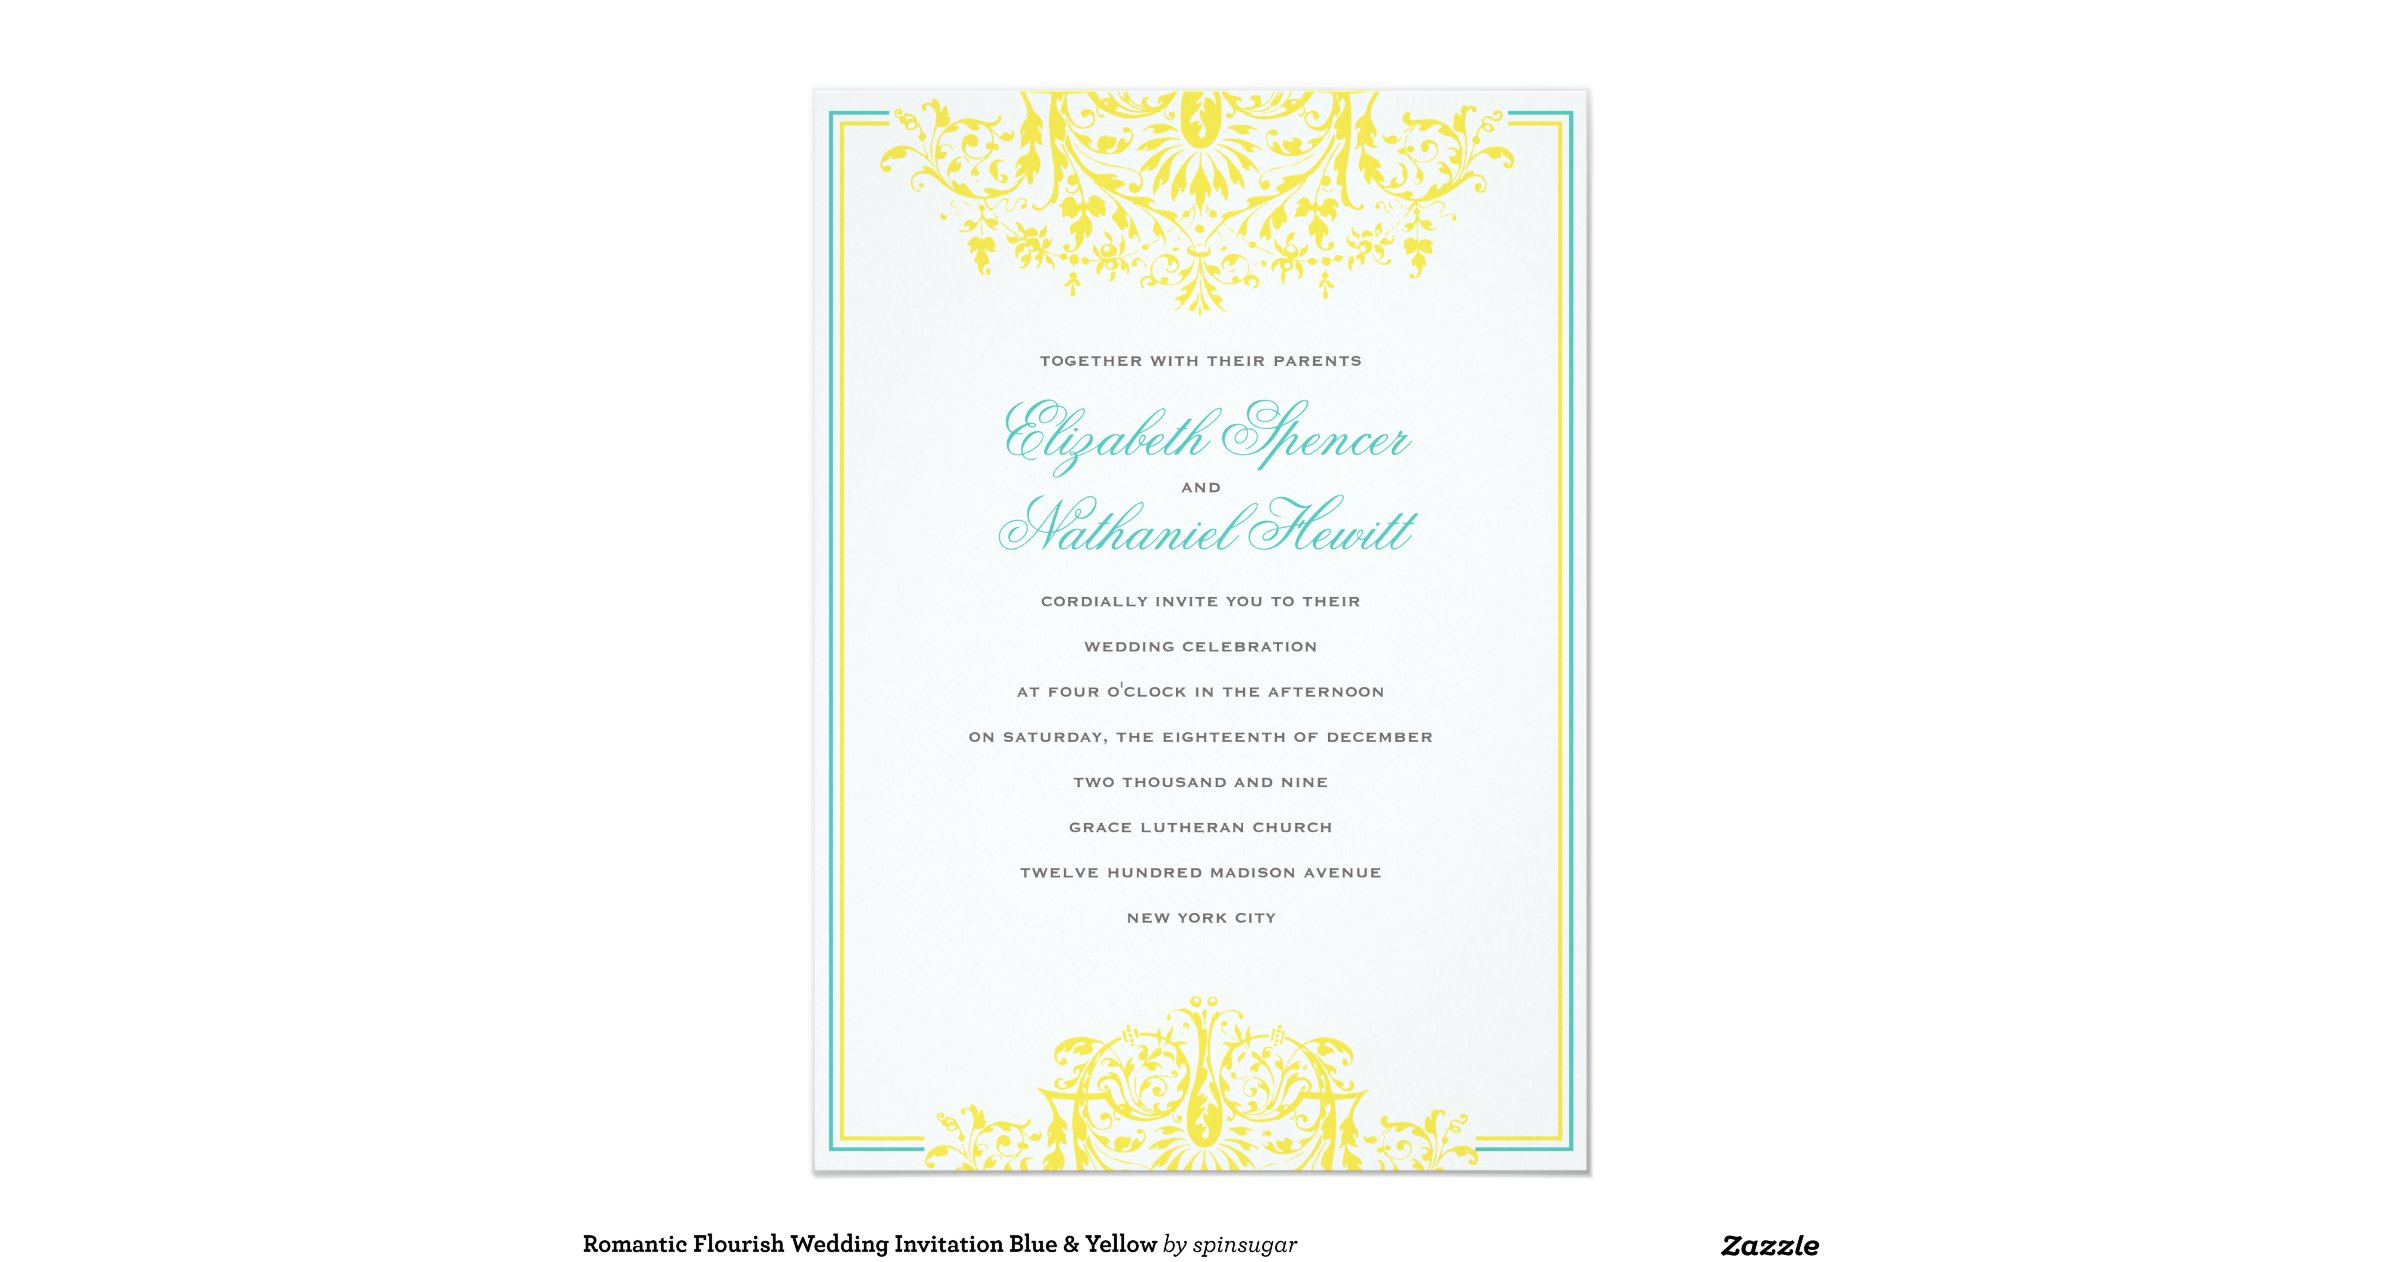 Flourish Wedding Invitations: Romantic_flourish_wedding_invitation_blue_yellow